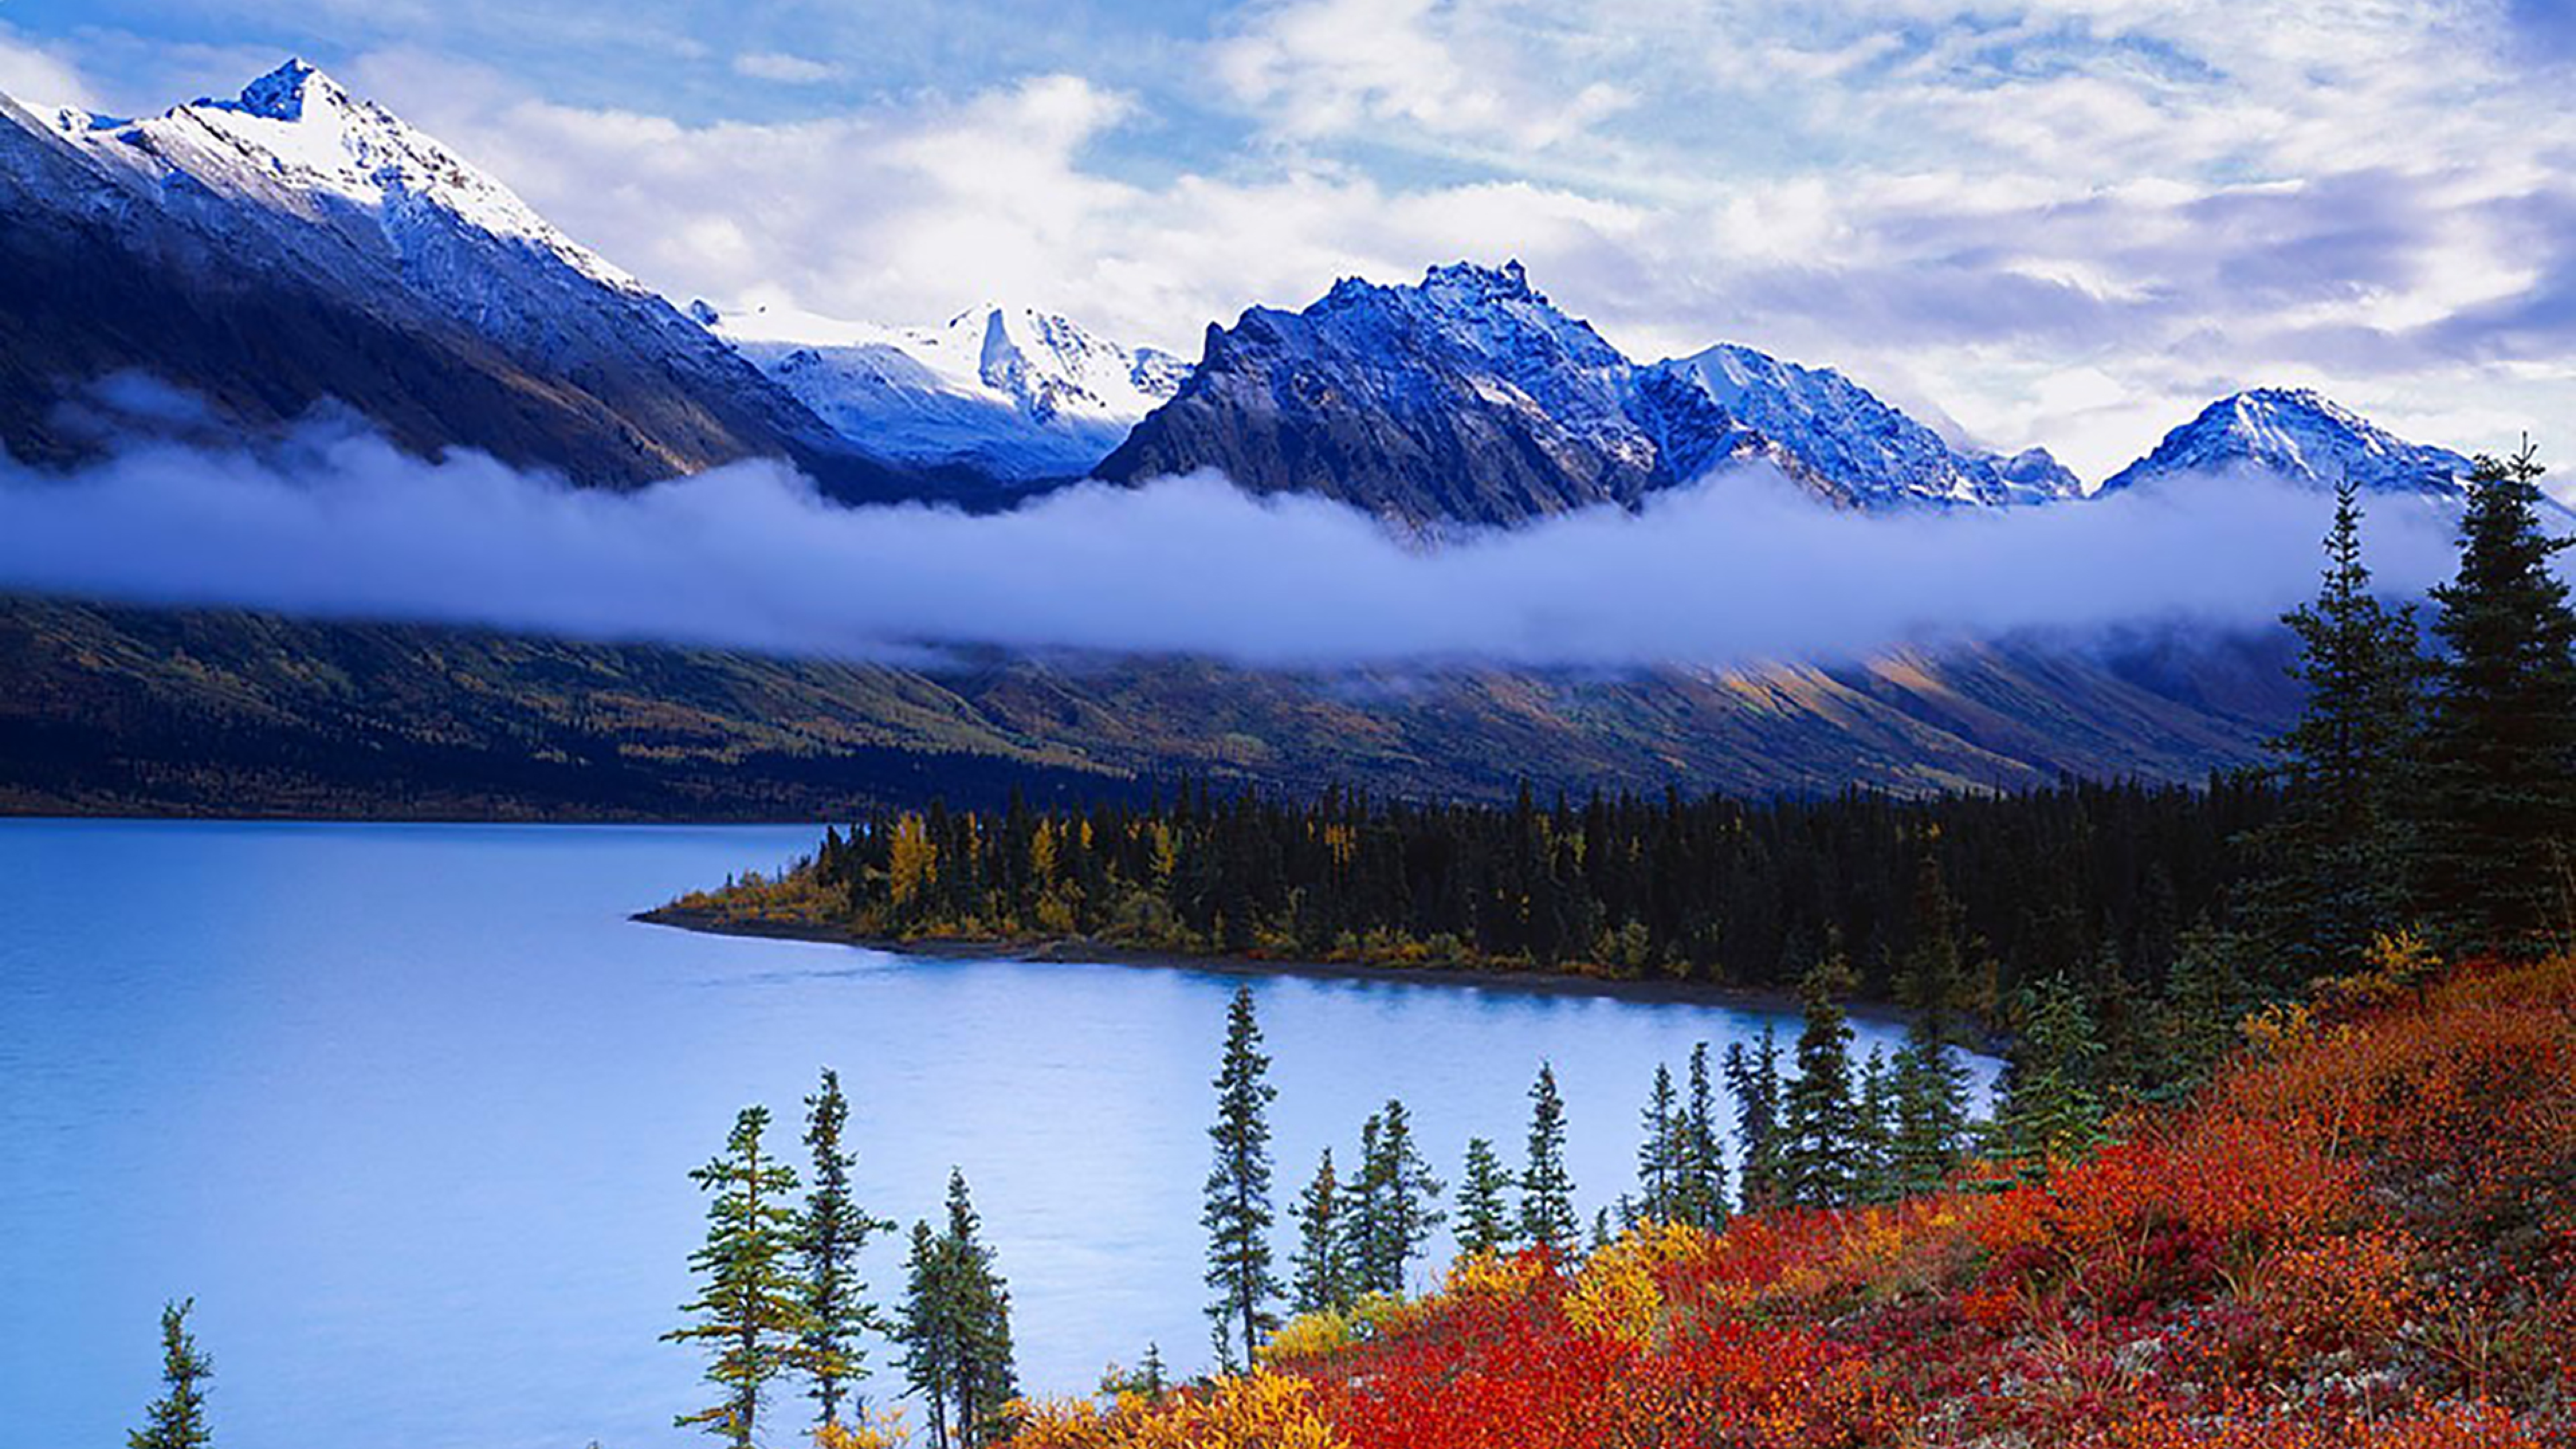 Low clouds hang over a crystal blue, still lake. In the foreground, autumnal colored leaves cover rolling hills